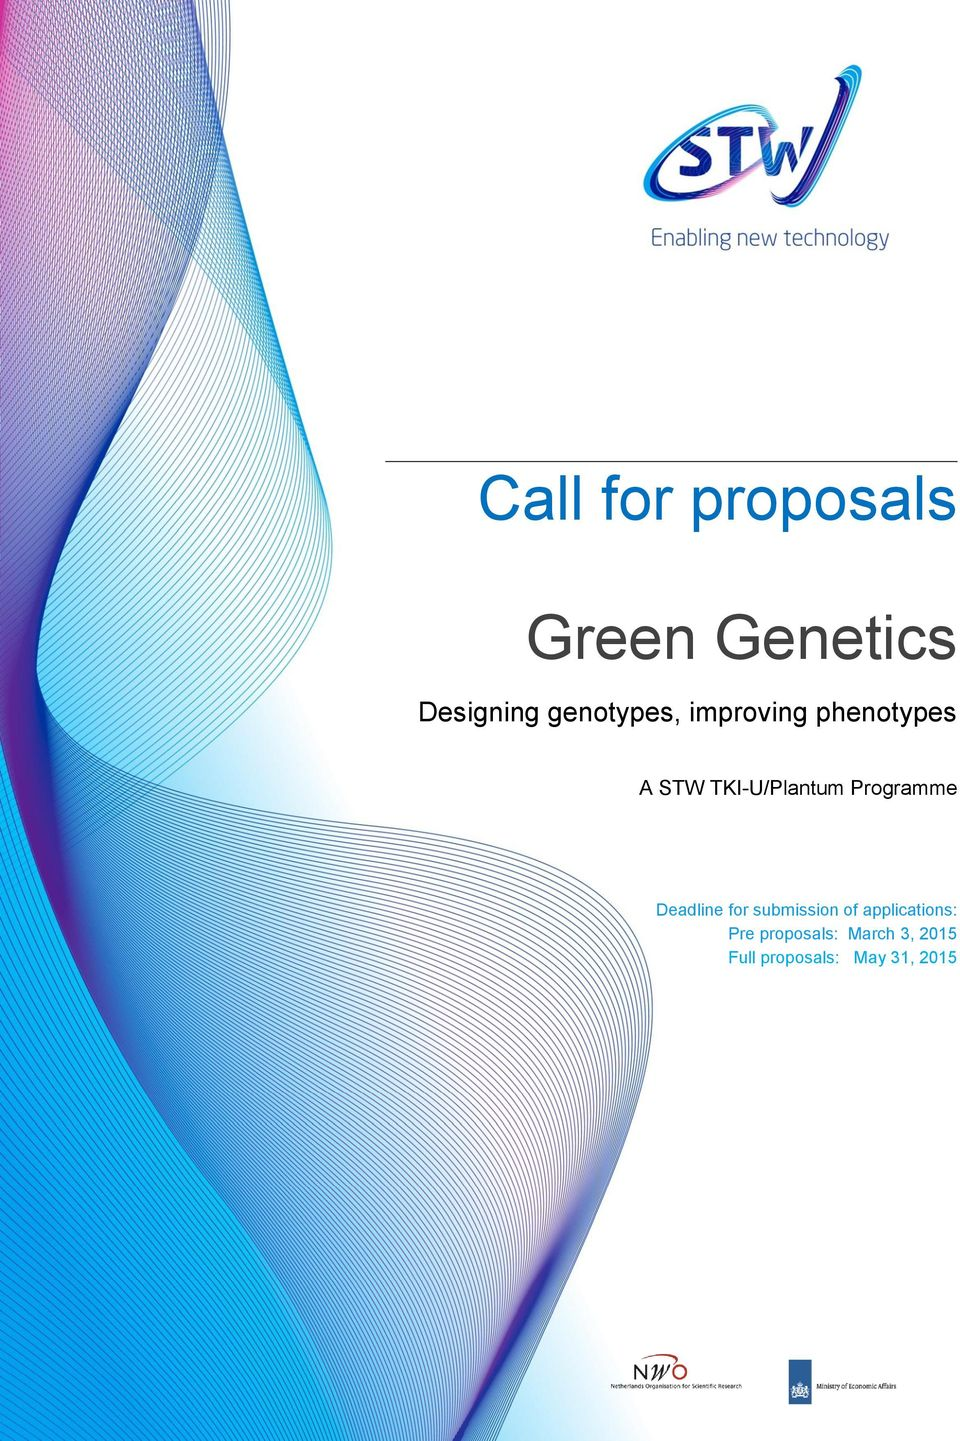 TKI-U/Plantum Programme Deadline for submission of